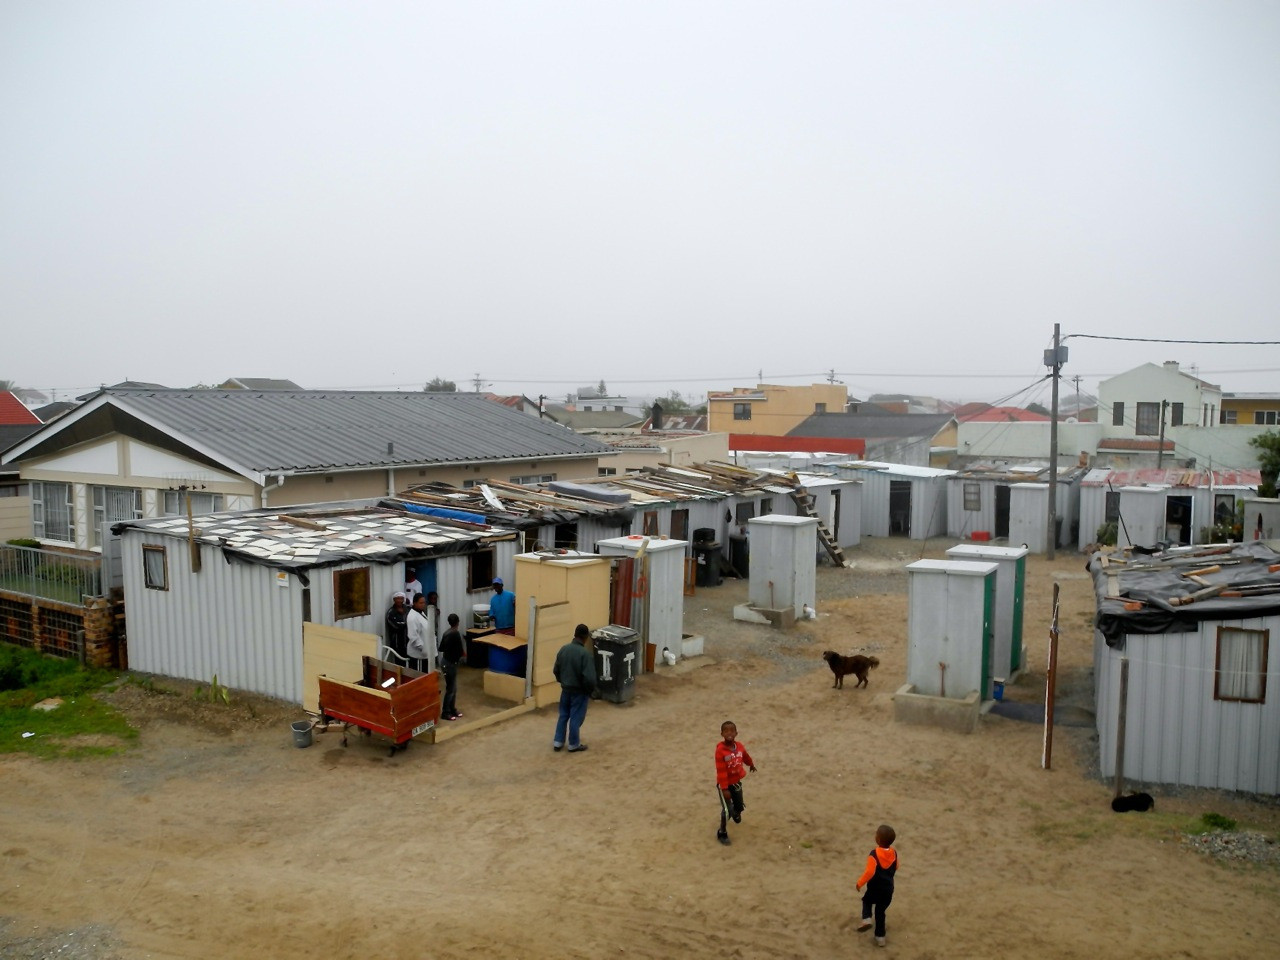 Cape Town Adopts Re-Blocking Strategy for Informal Settlements, In Kuku Town, dwellings were rearranged to face a communal courtyard - where people can gather for activities and keep an eye on their neighbors and shared facitilies.. Image Courtesy of Future Cape Town